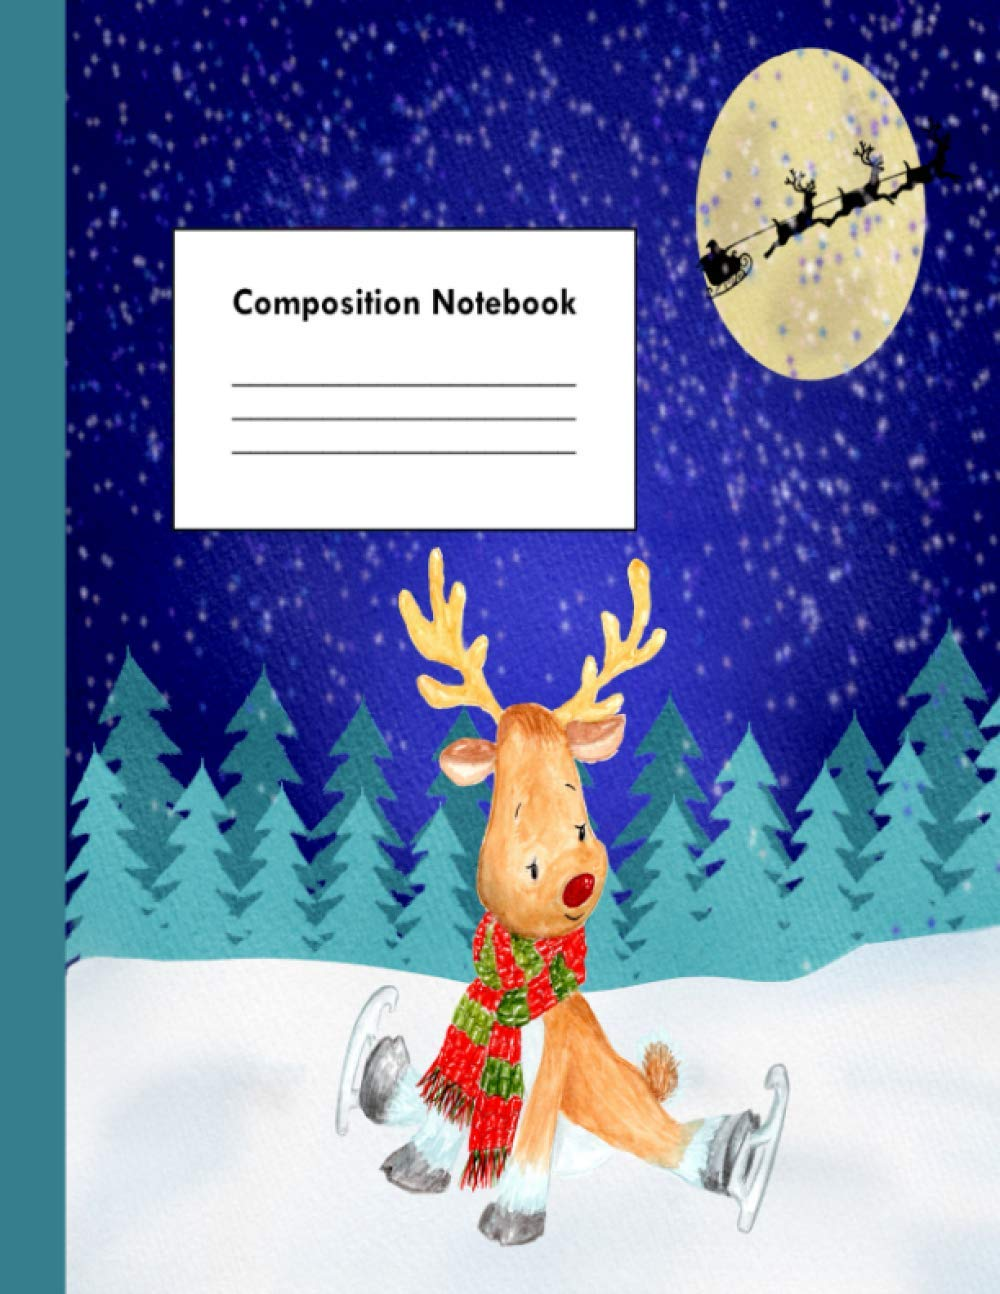 Christmas Reindeer Story 2020 Christmas Reindeer Composition Notebook   100 Ruled Pages   8.5x11